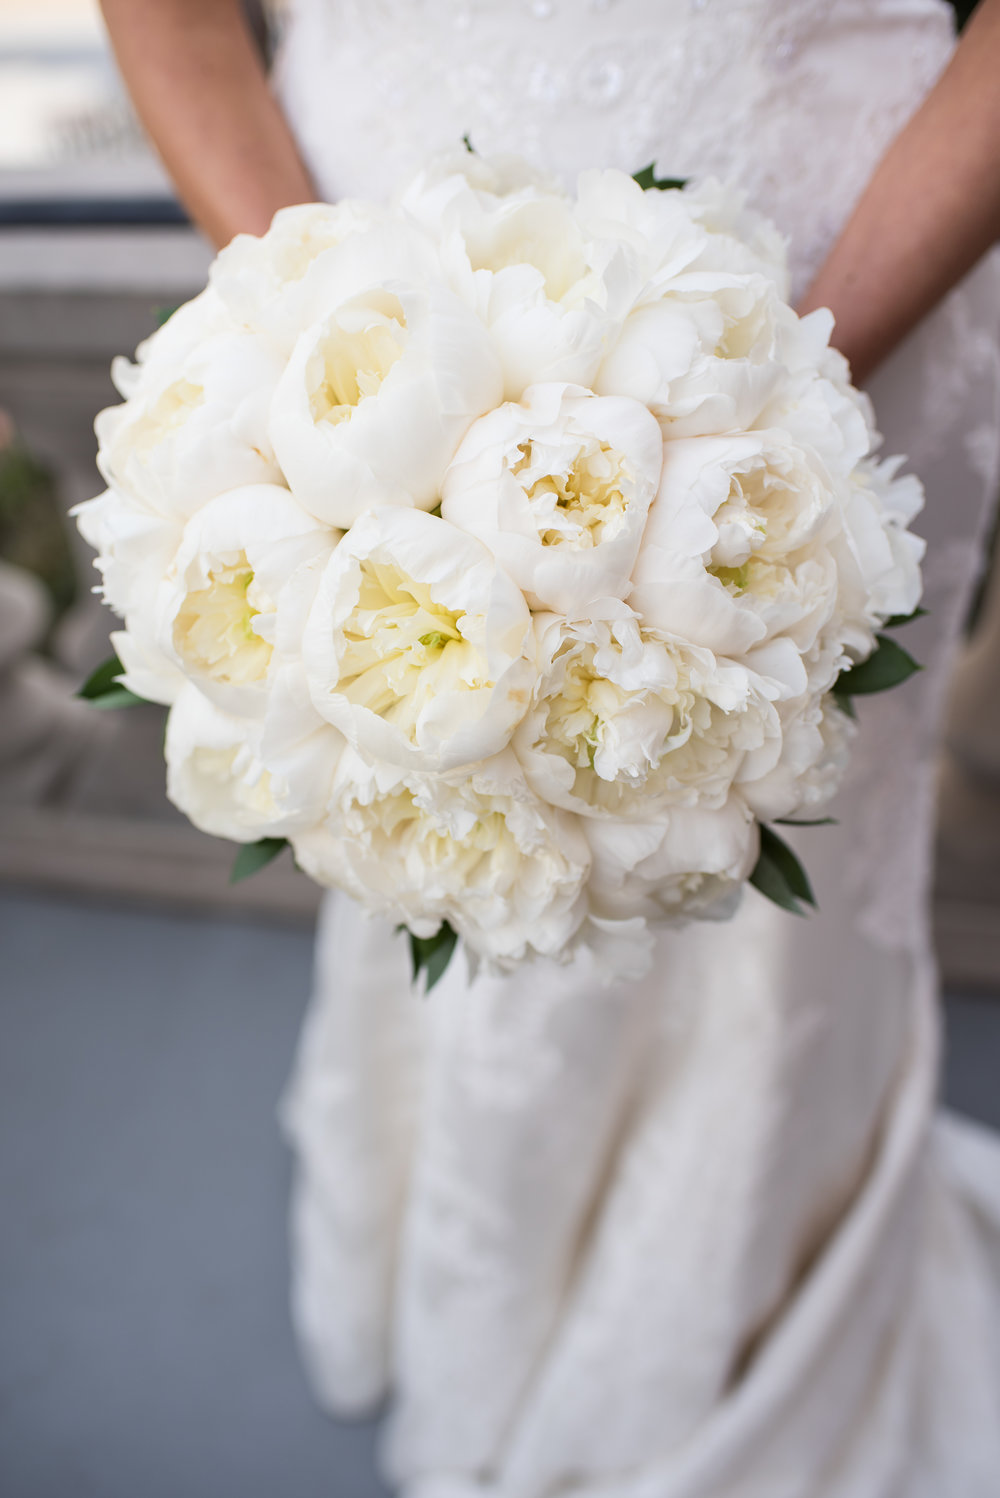 Atelier ASHLEY Flowers + Erin Tetterton Photography + All peony bouquet + All white bouquet  + round bouquet + National Press Club